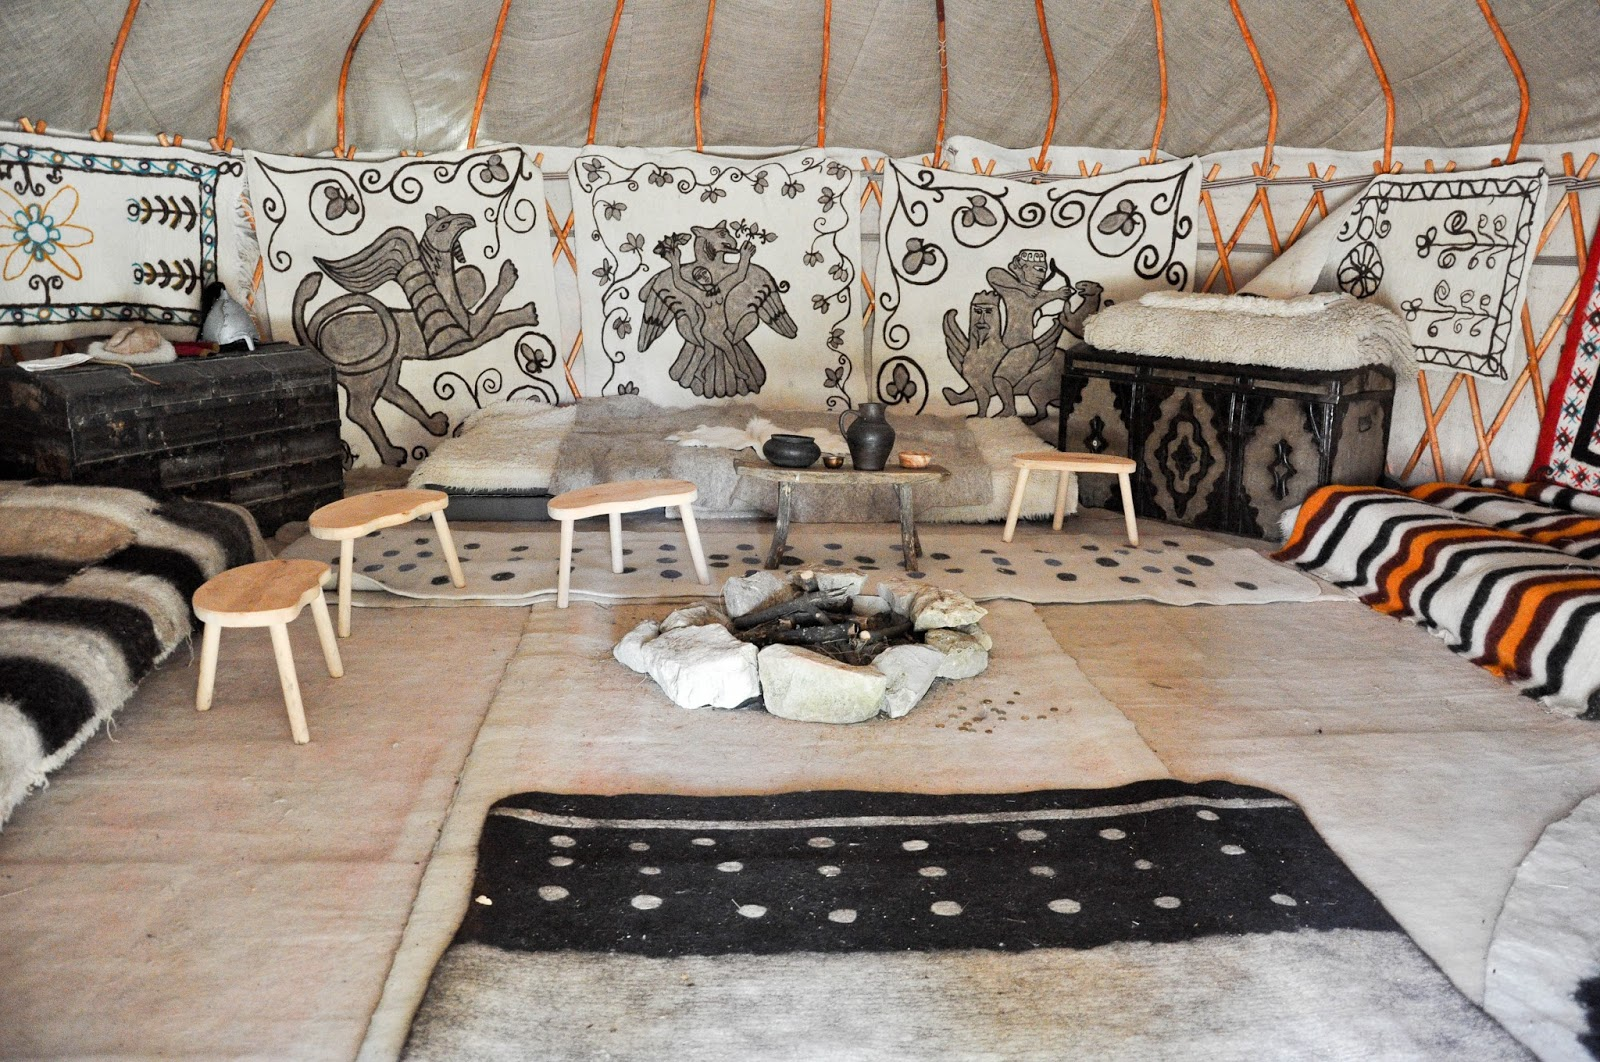 Inside the yurt, Pliska, Bulgaria